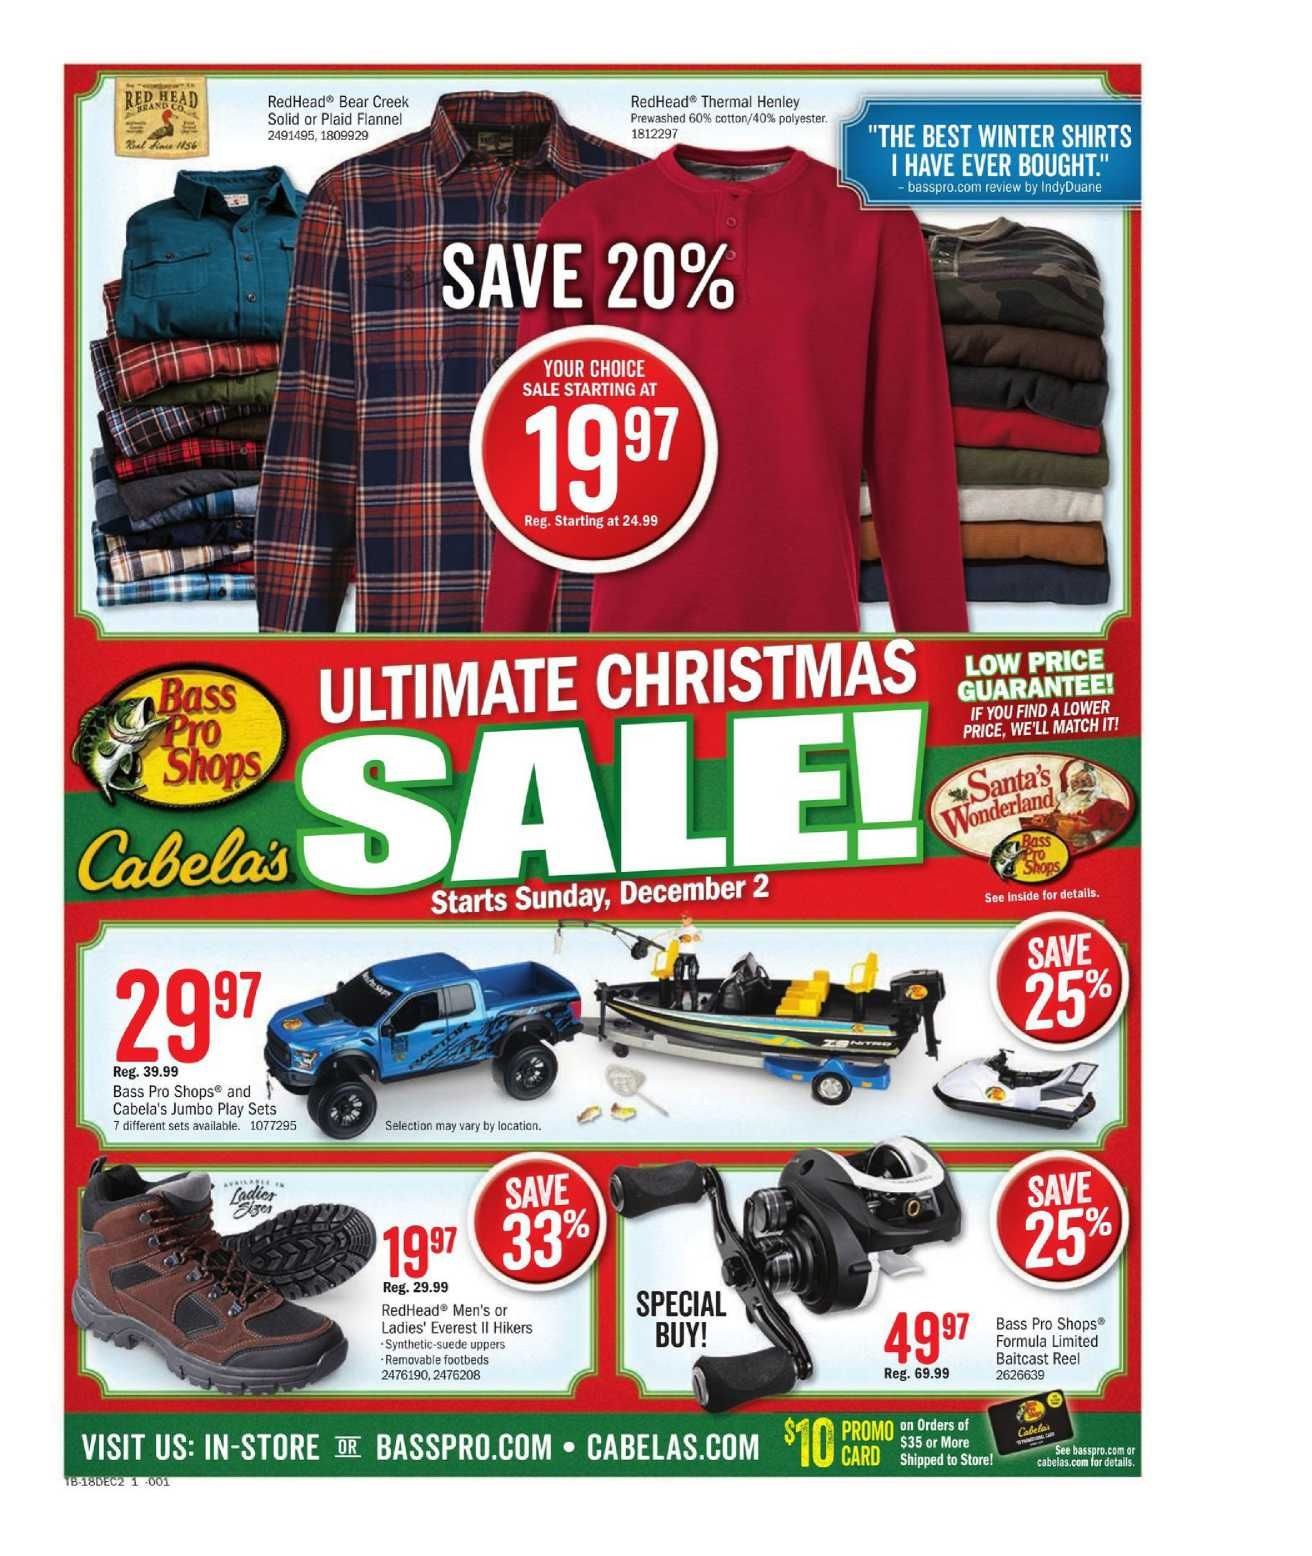 Cabela's Catalog Store Sale Flyer January 11 - 27, 2019 | Weekly Ad